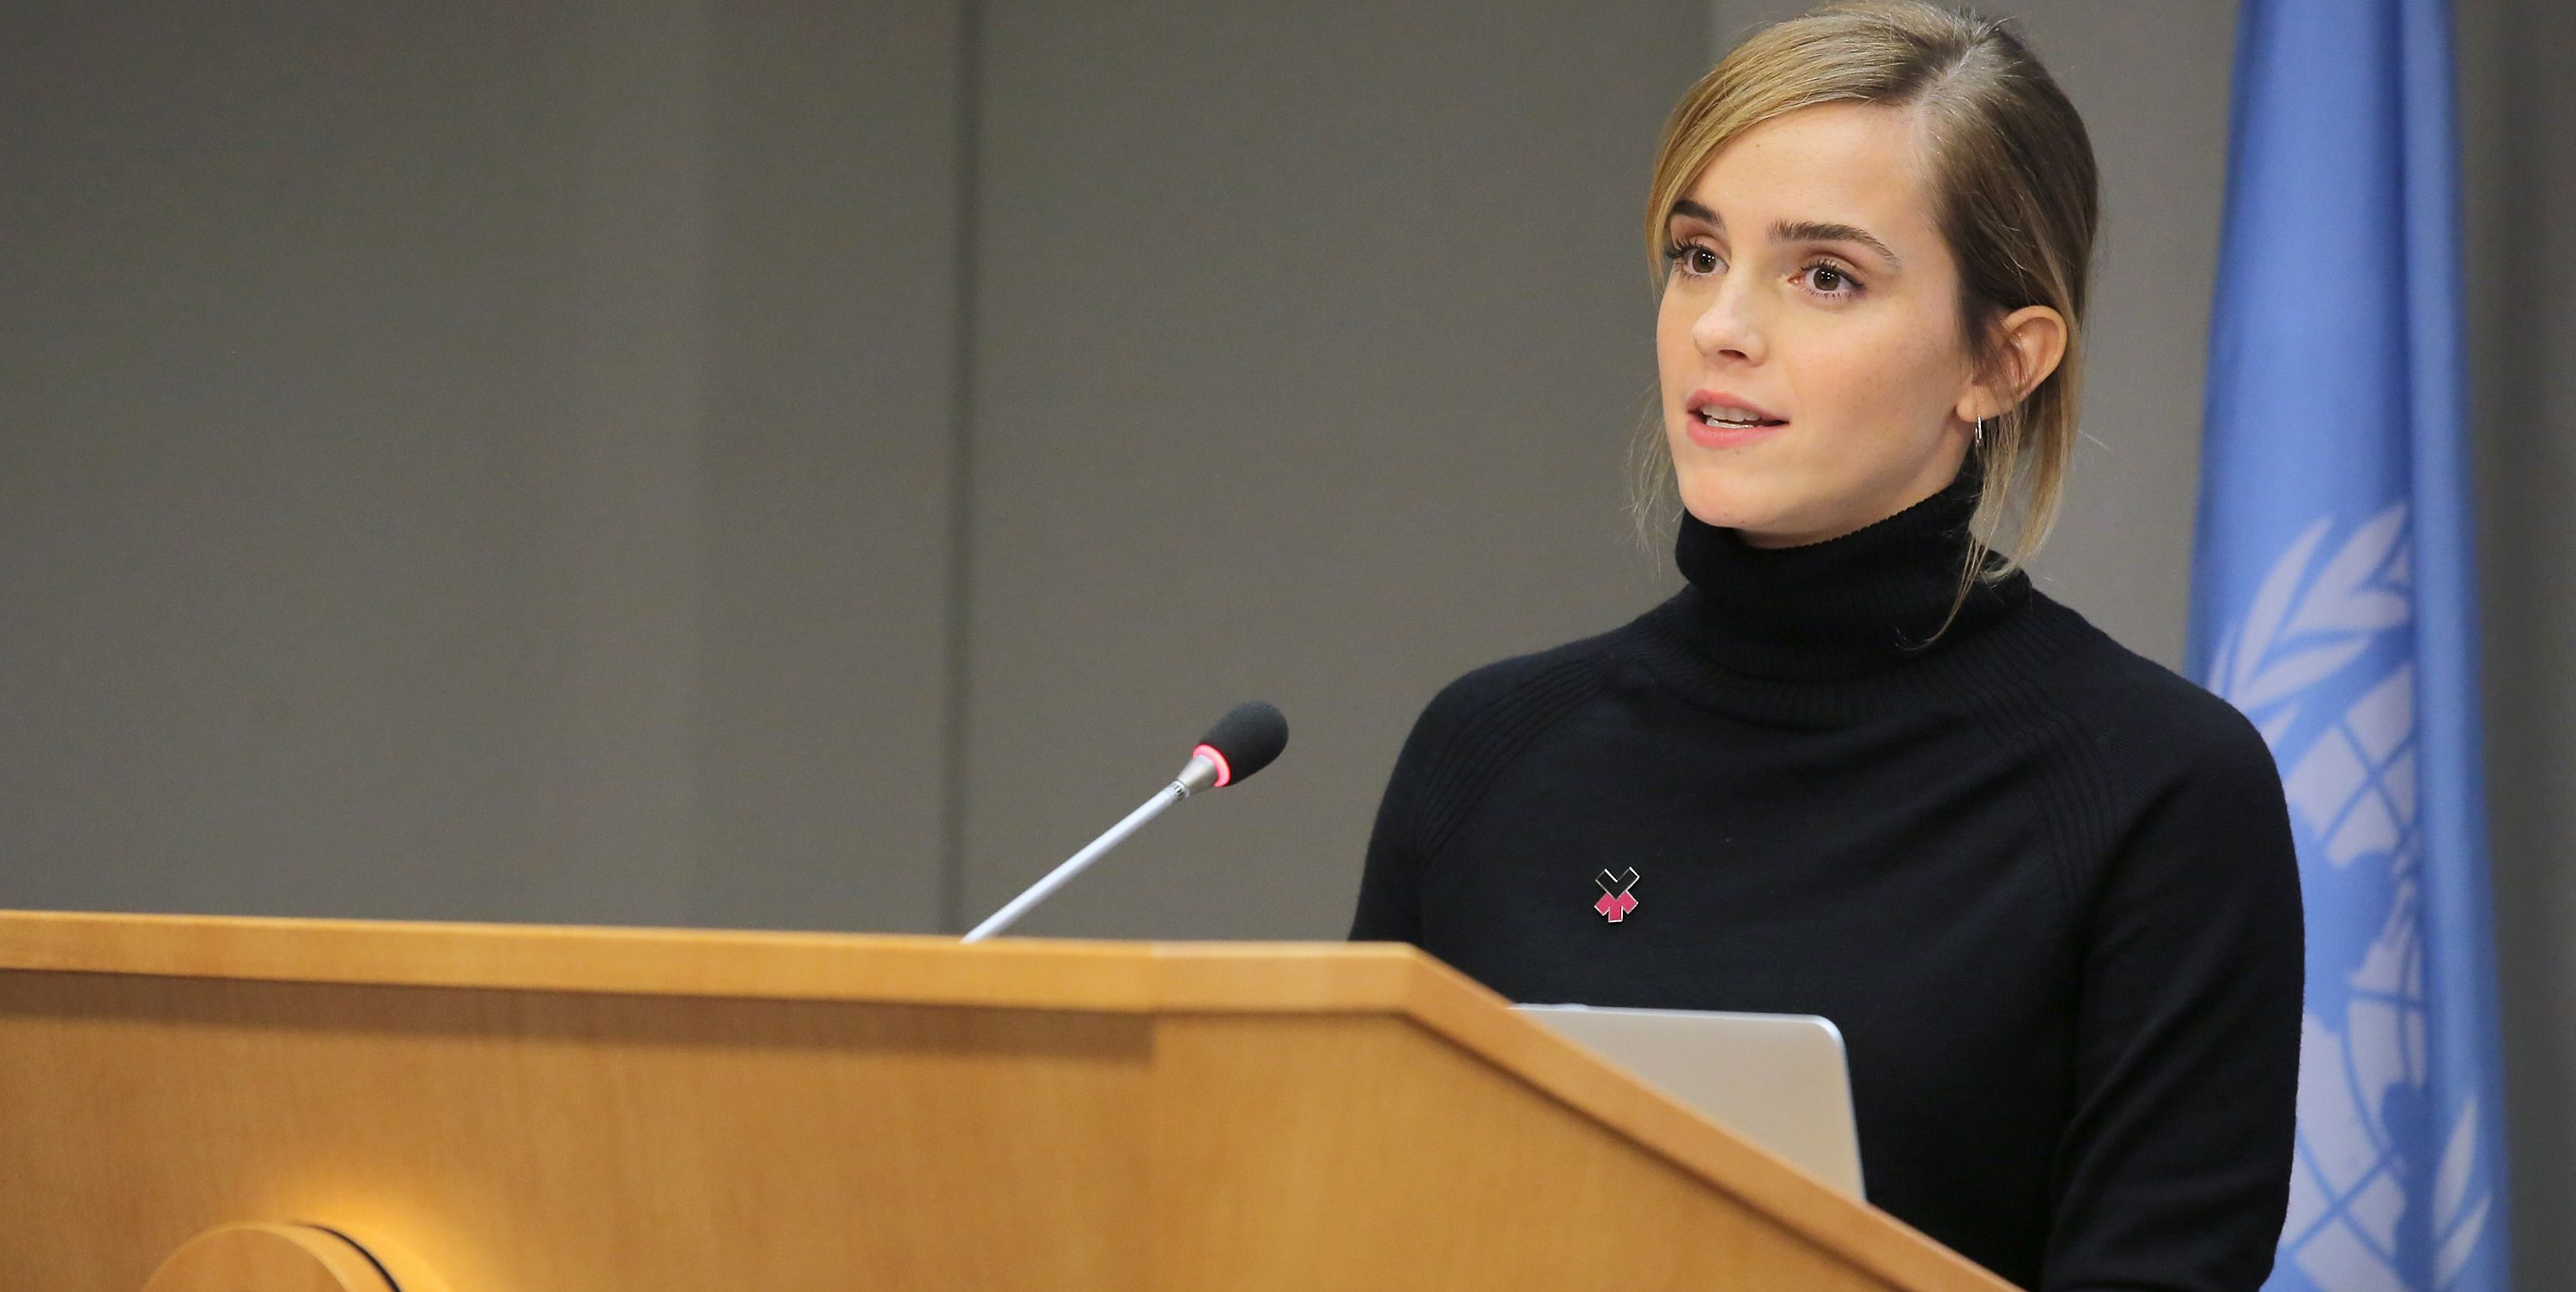 Emma Watson Speaks At the launch of the HeForShe IMPACT 10x10x10 University Parity Report at The United Nations